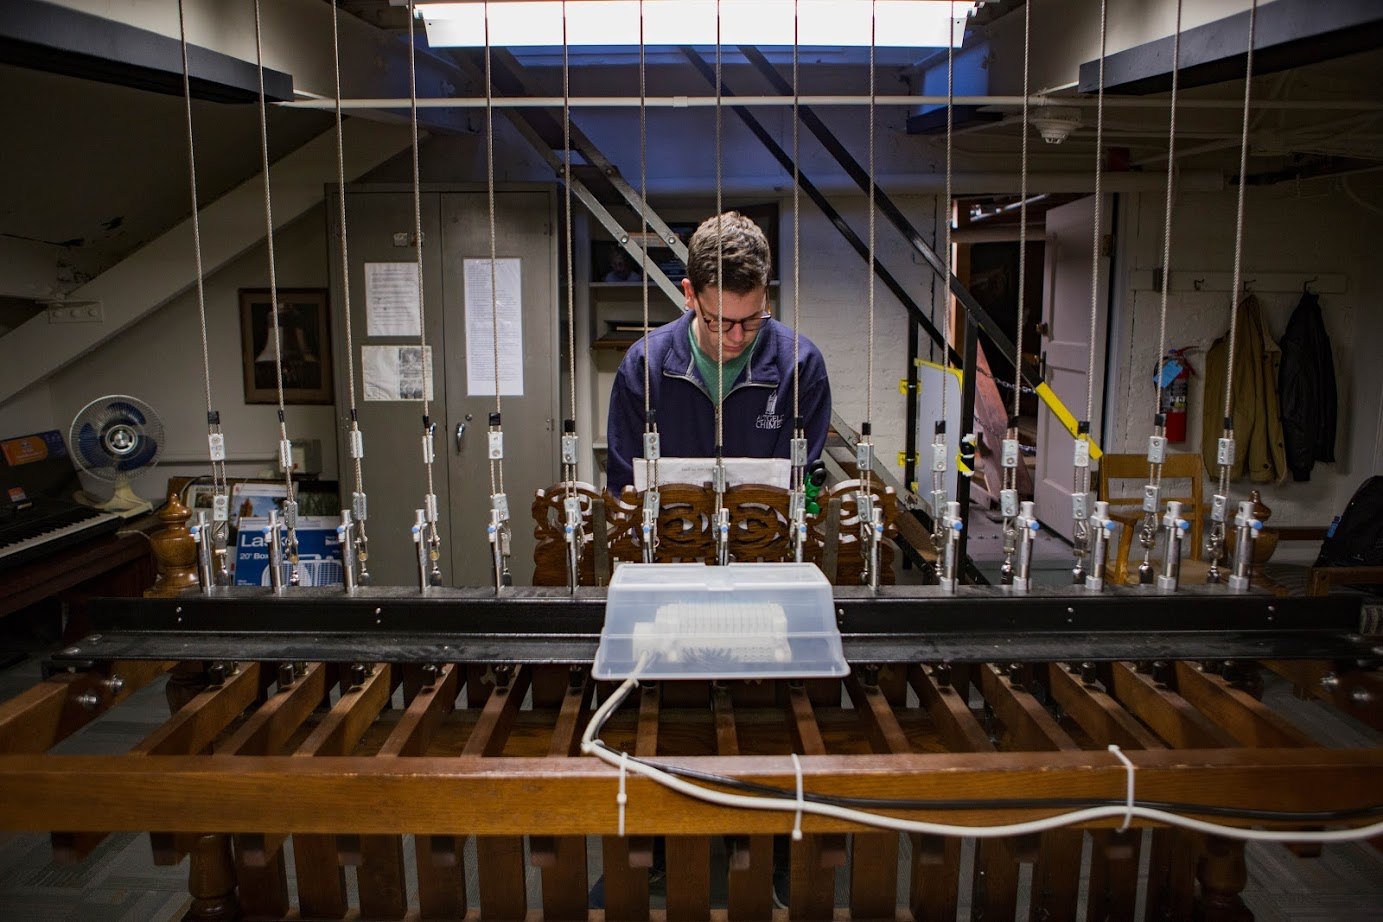 """Daniel Marks, sophomore in Engineering, plays on the clavier in Altgeld Hall on Wednesday. The Altgeld Ringers, an RSO comprised of players who have been ringing the Senior Memorial Chimes in Altgeld Hall Tower since 1920, are preparing for Halloween by practicing """"spooky"""" chimes."""